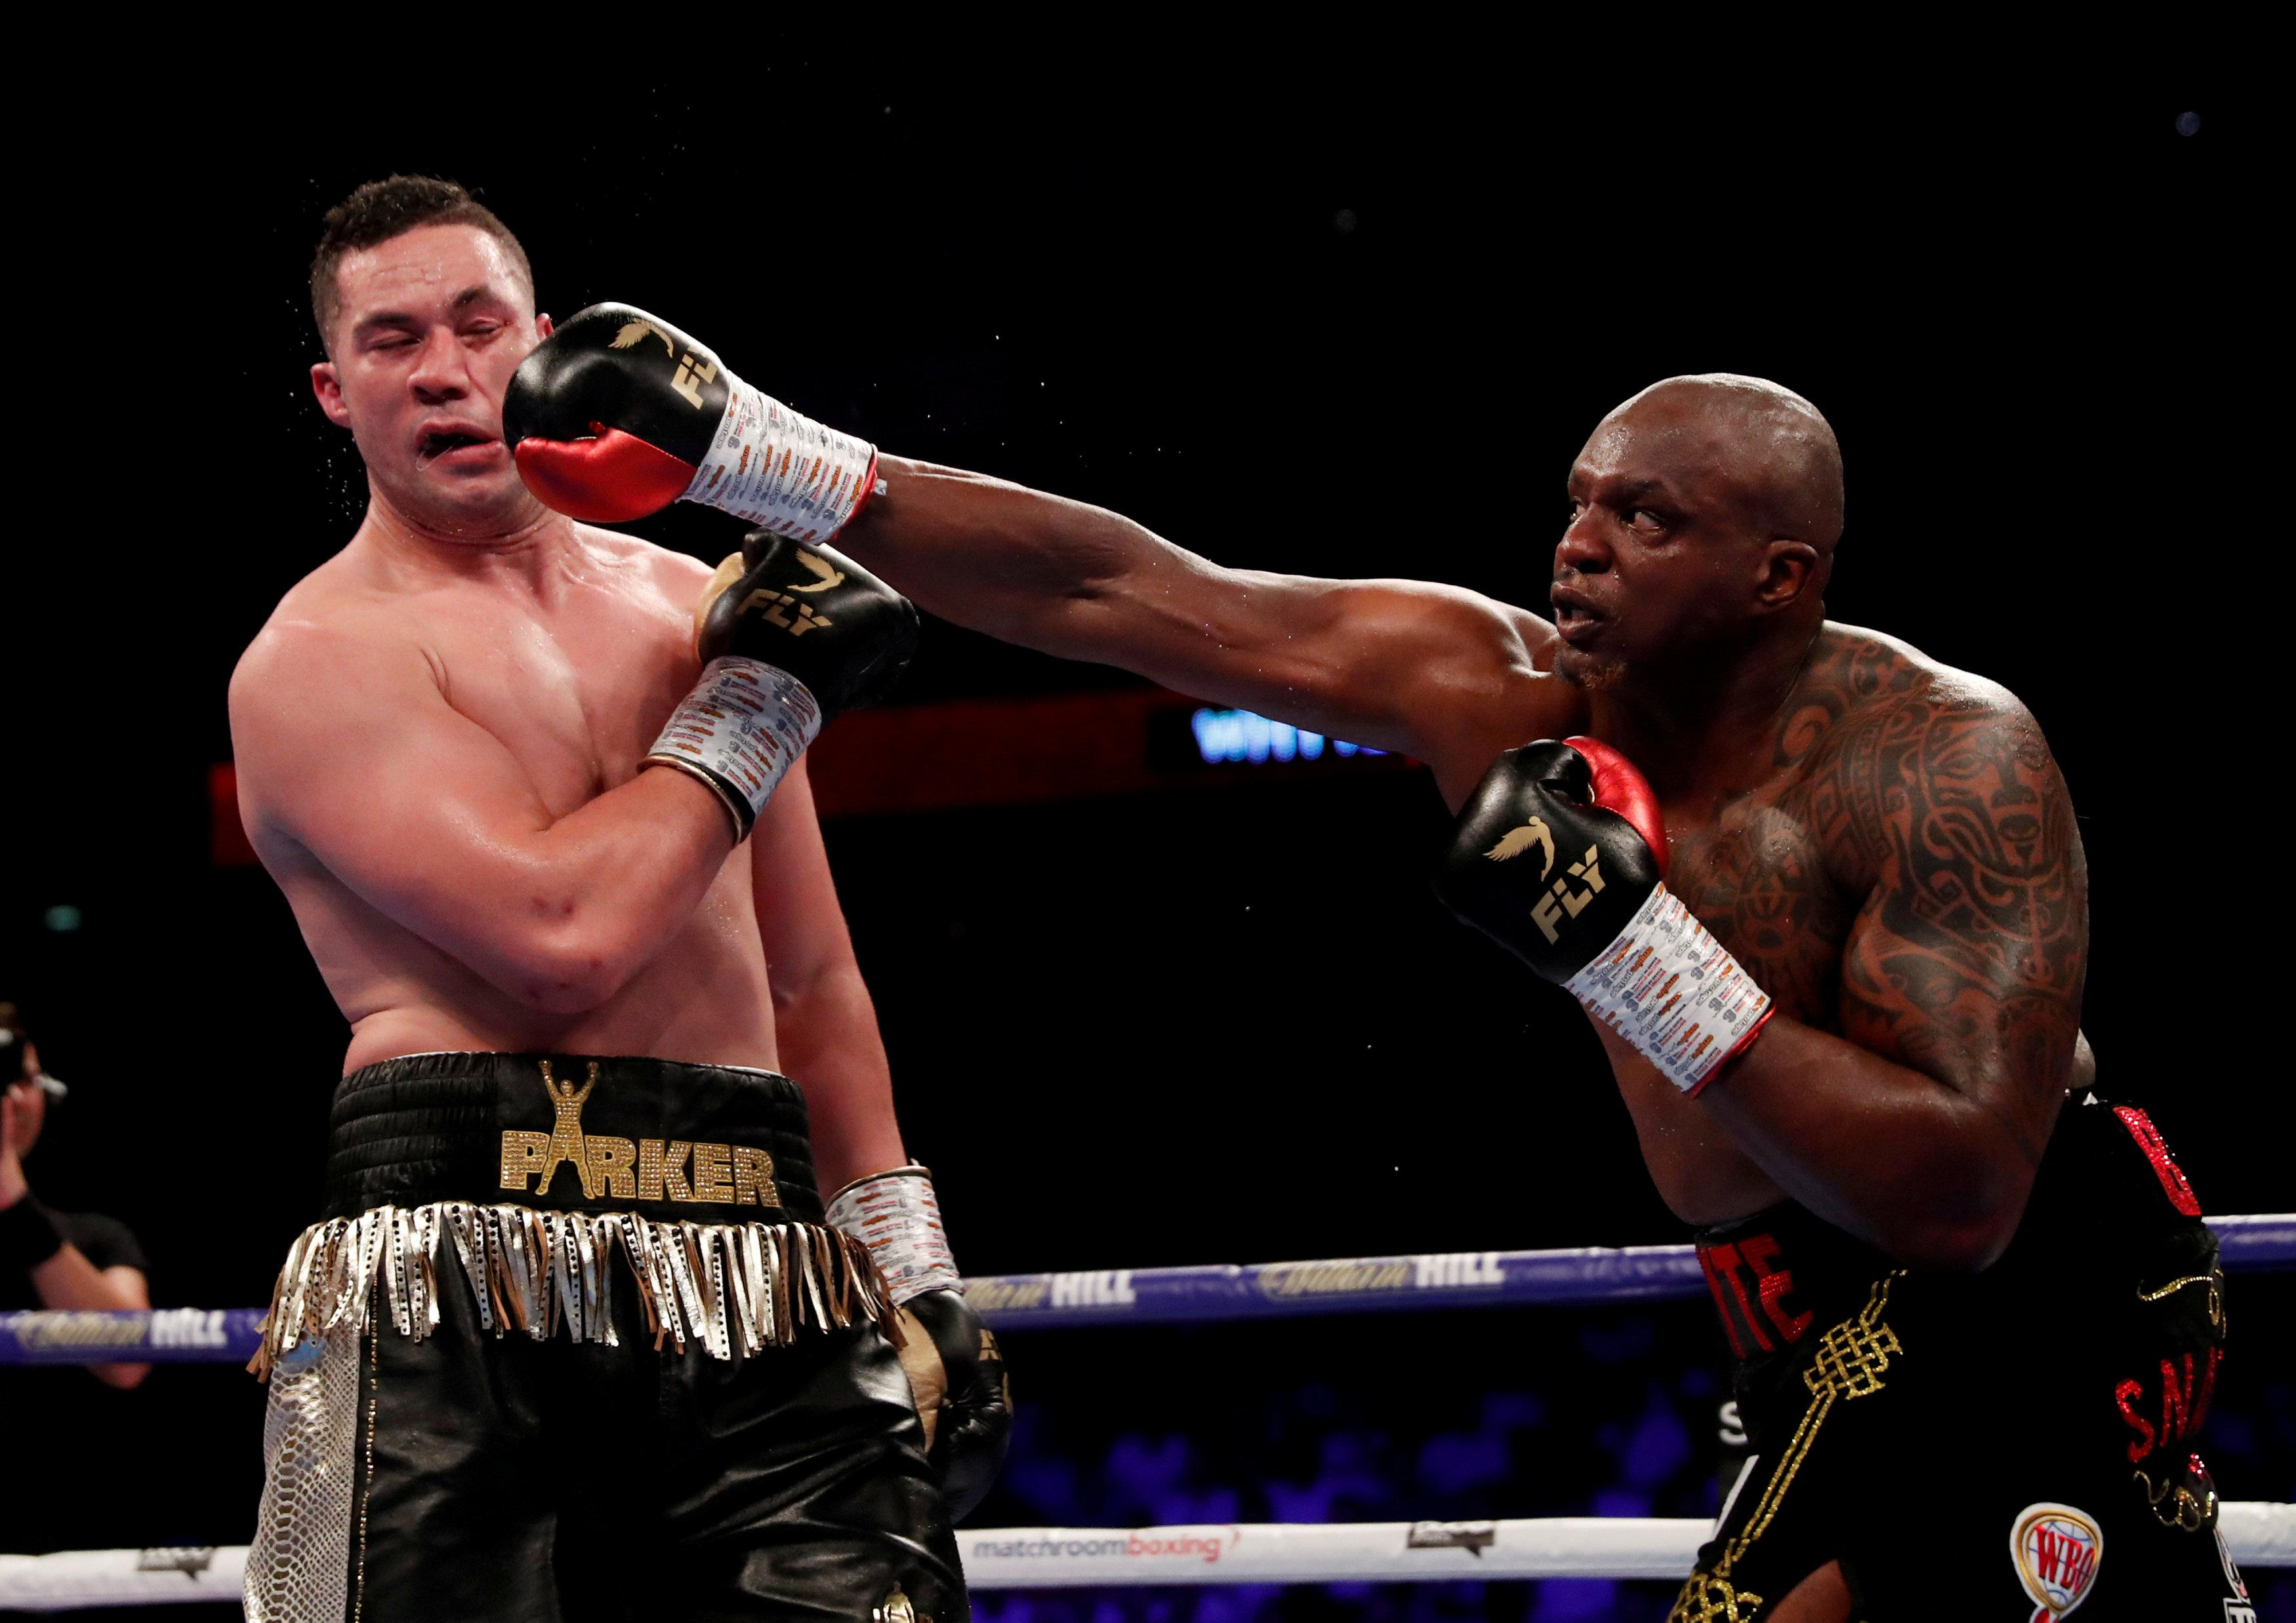 Joseph Parker believes he can still win and unify world titles within four years